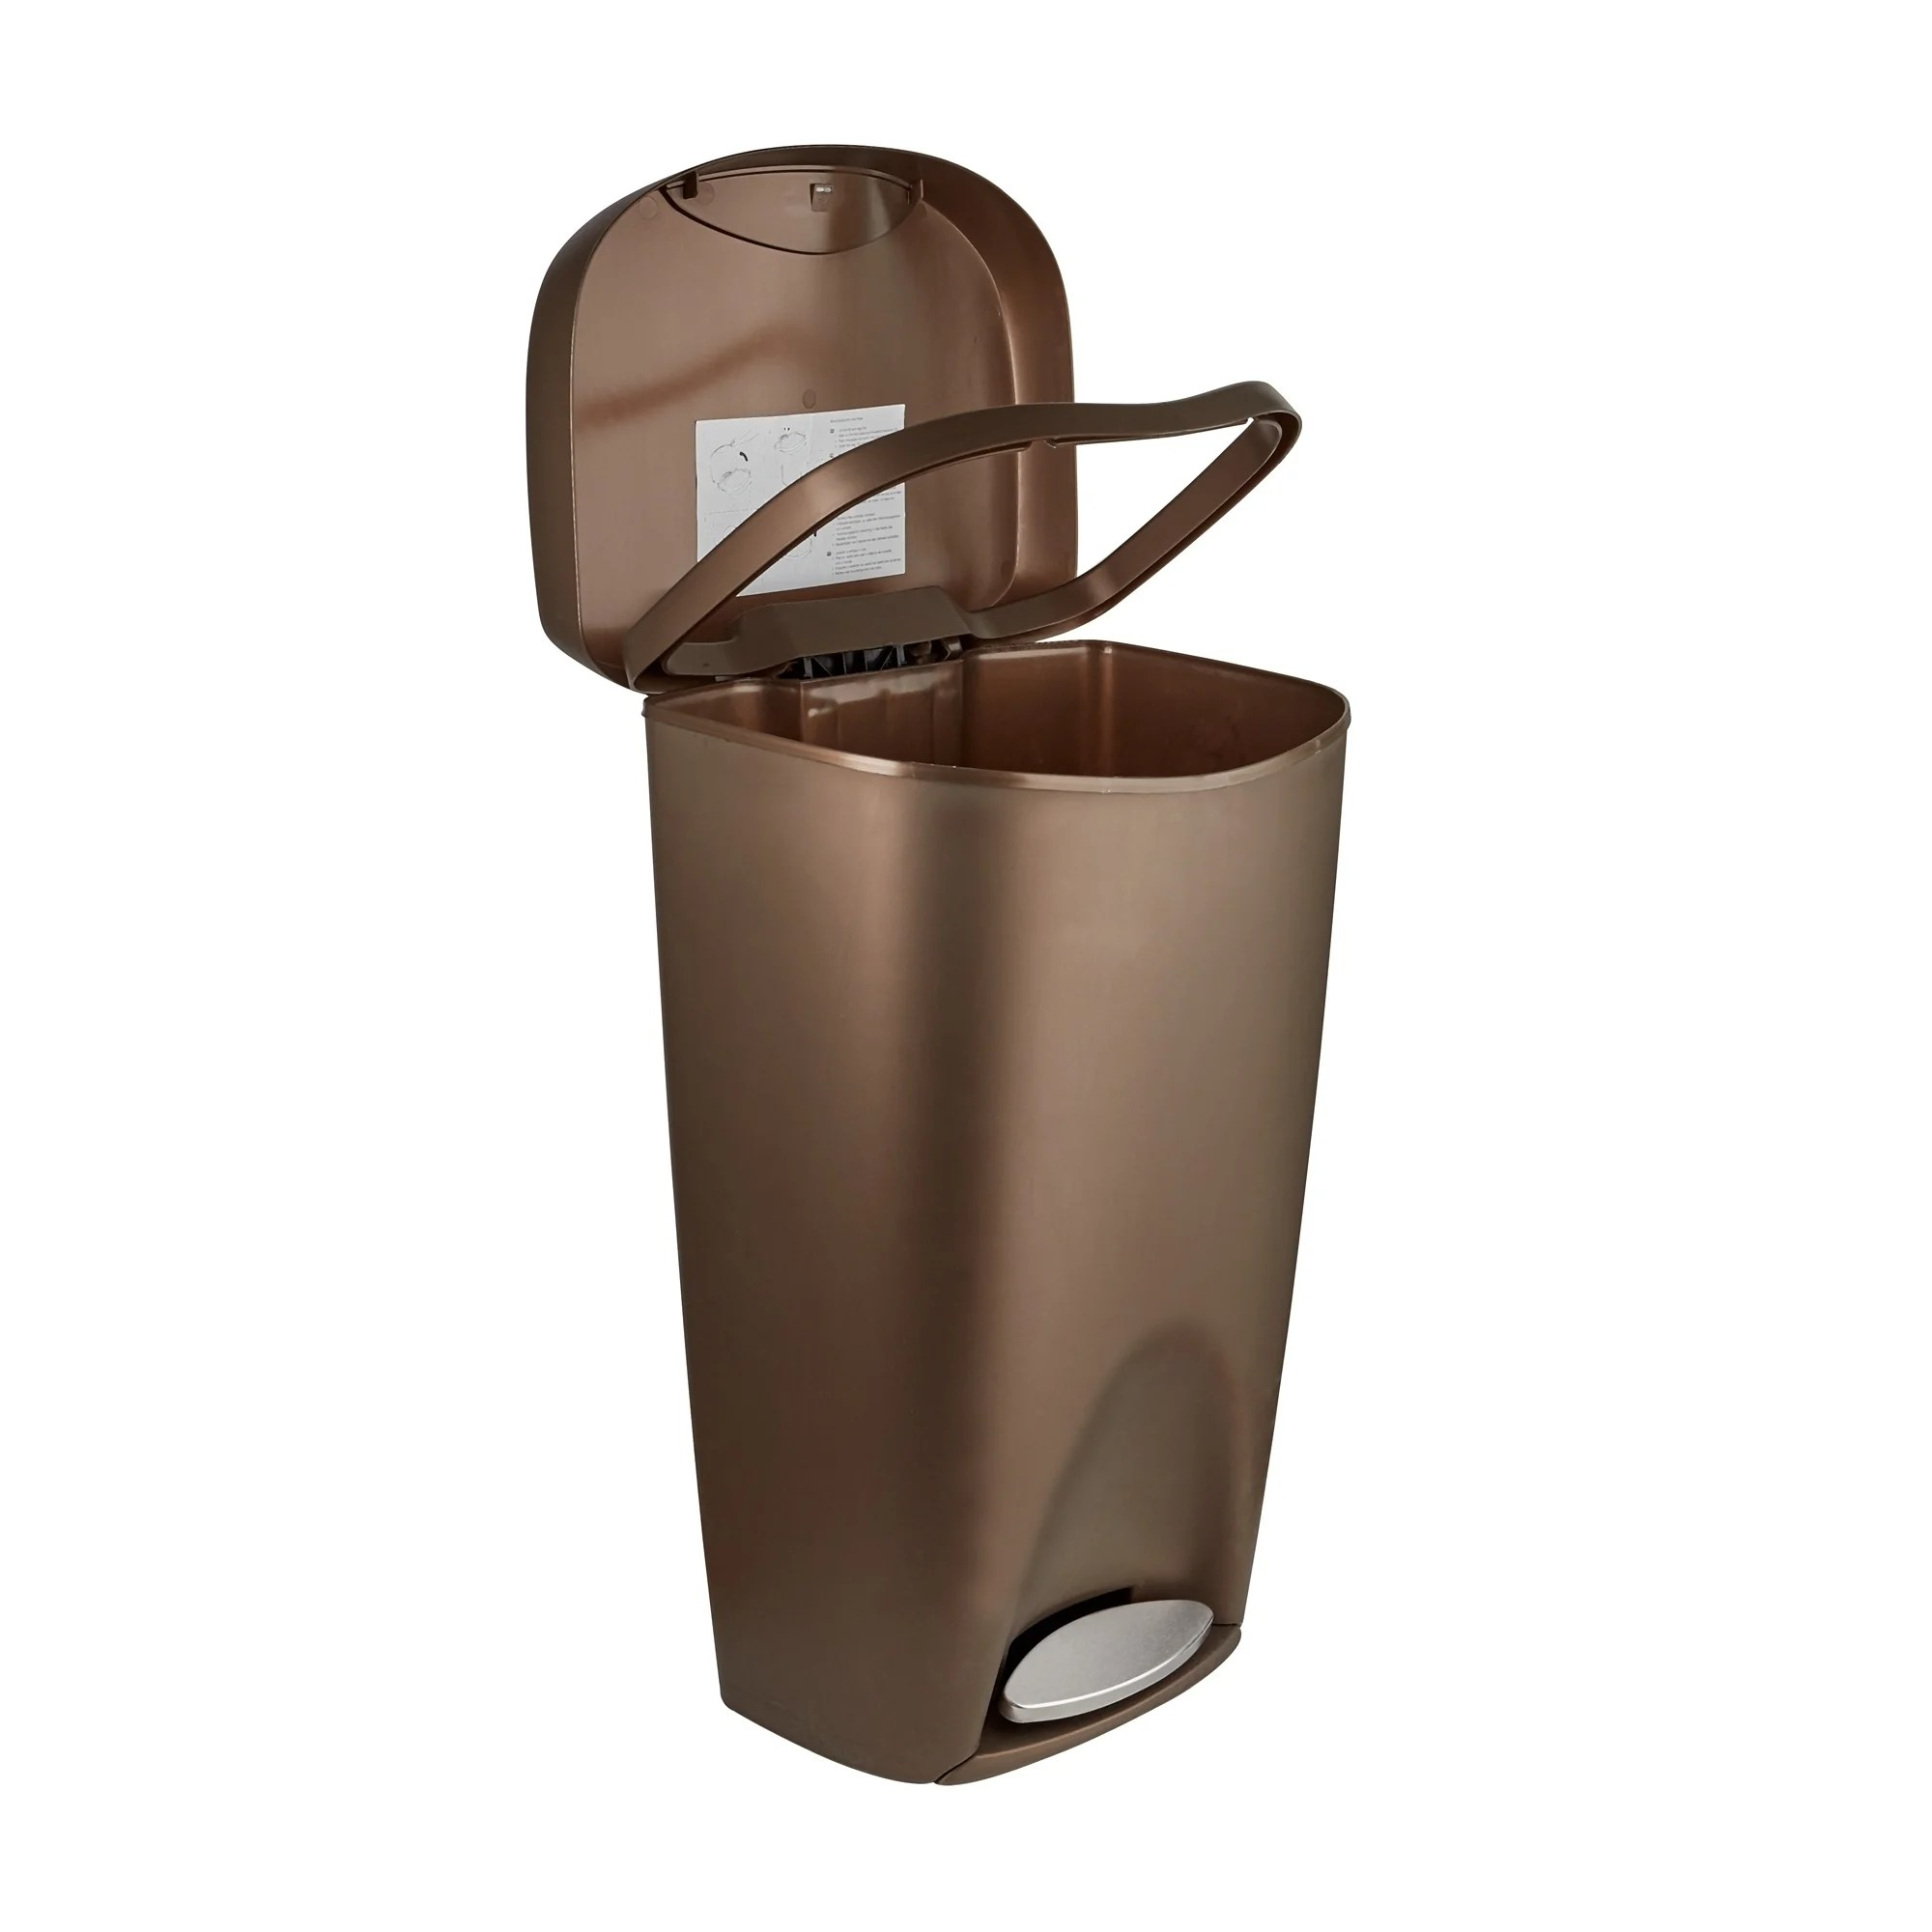 Rose Gold Trash Can Copper Trash Can With Lid Home Ideas